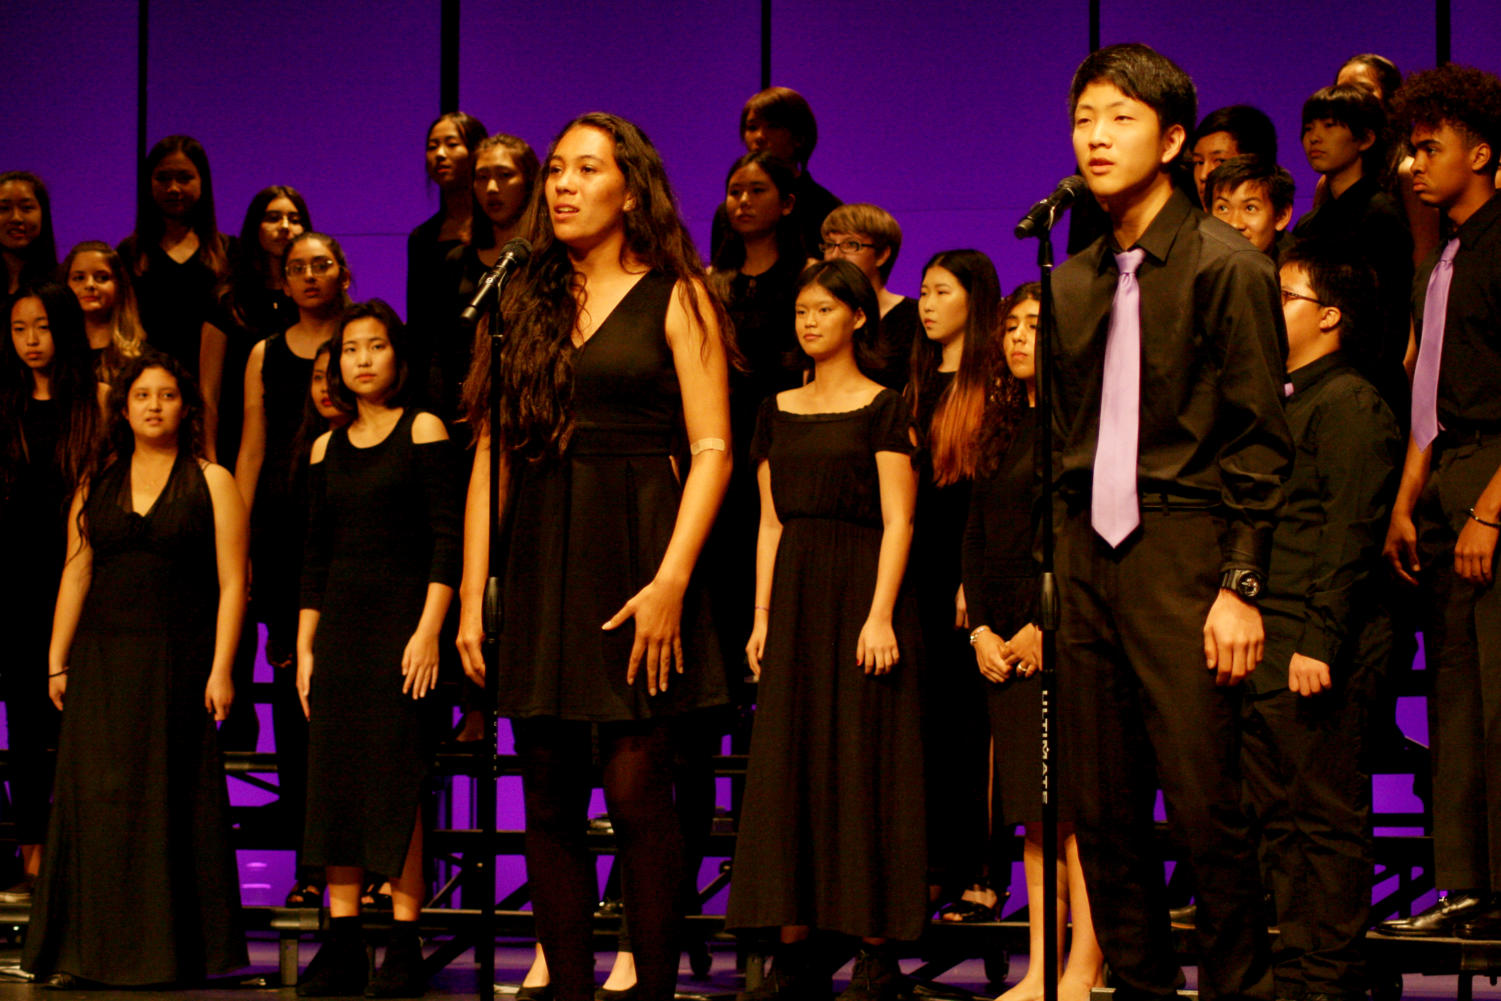 """Sophomore Kylie Palacio and freshman Justin Kim perform the second solo of """"Oye"""", the last song of the festival, in Spanish. Though there was a mike issue, both singers pushed through and kept their voices strong."""